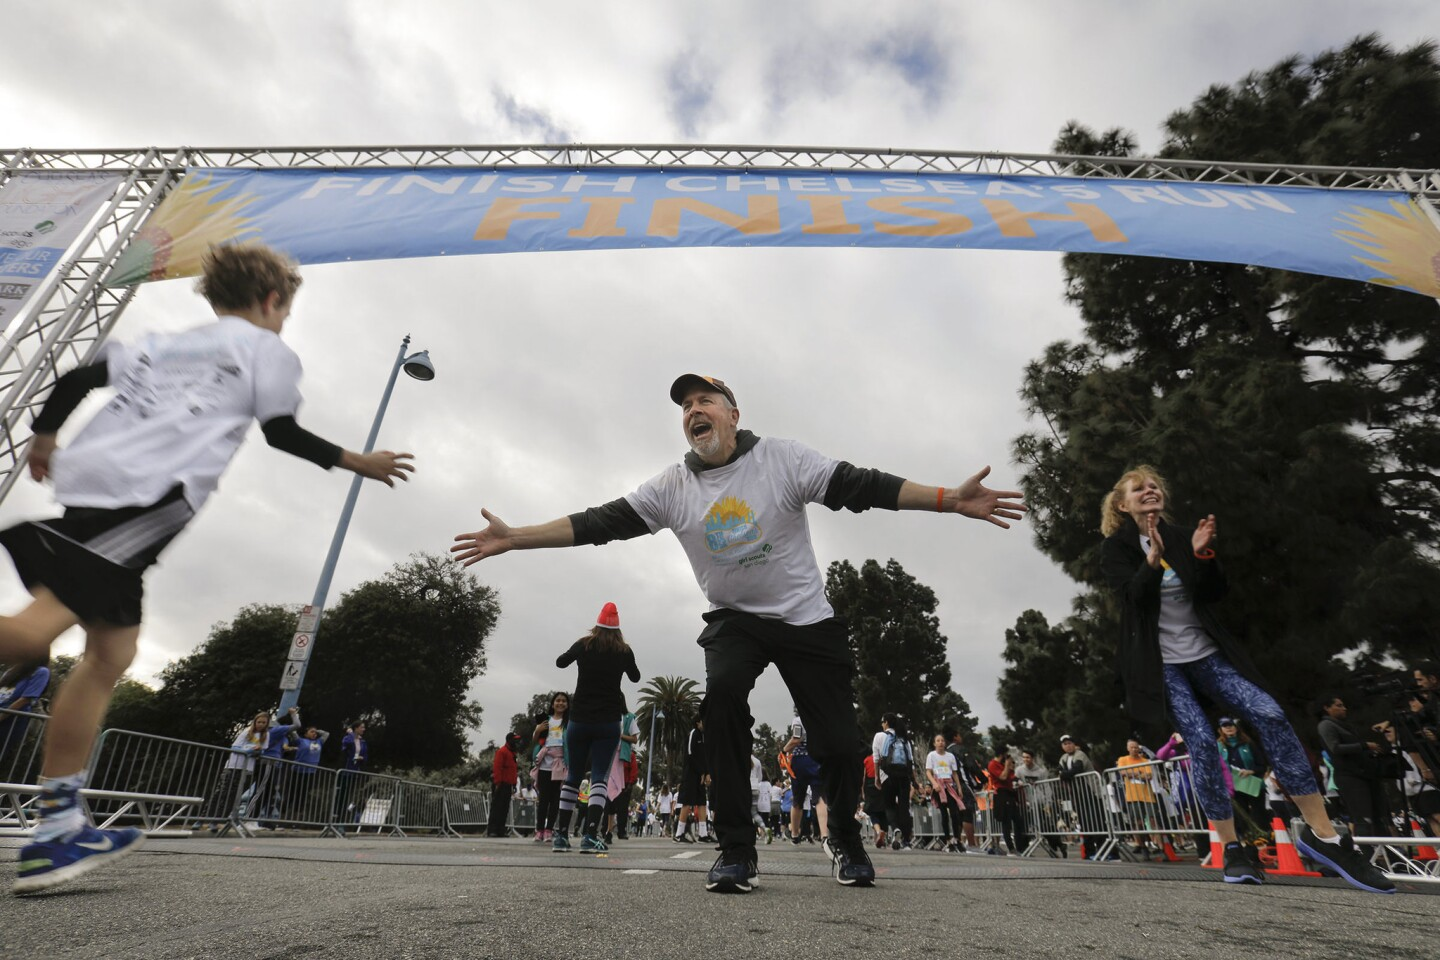 Brent King, center, and Kelly King, right, the parents of Chelsea King who was a 17-year-old Poway High student when she was killed by a sexual predator in 2010, greeted runners as they crossed the finish line in Balboa Park at the end of the 8th annual Finish Chelsea's Run 5K walk/run in memory of their daughter.